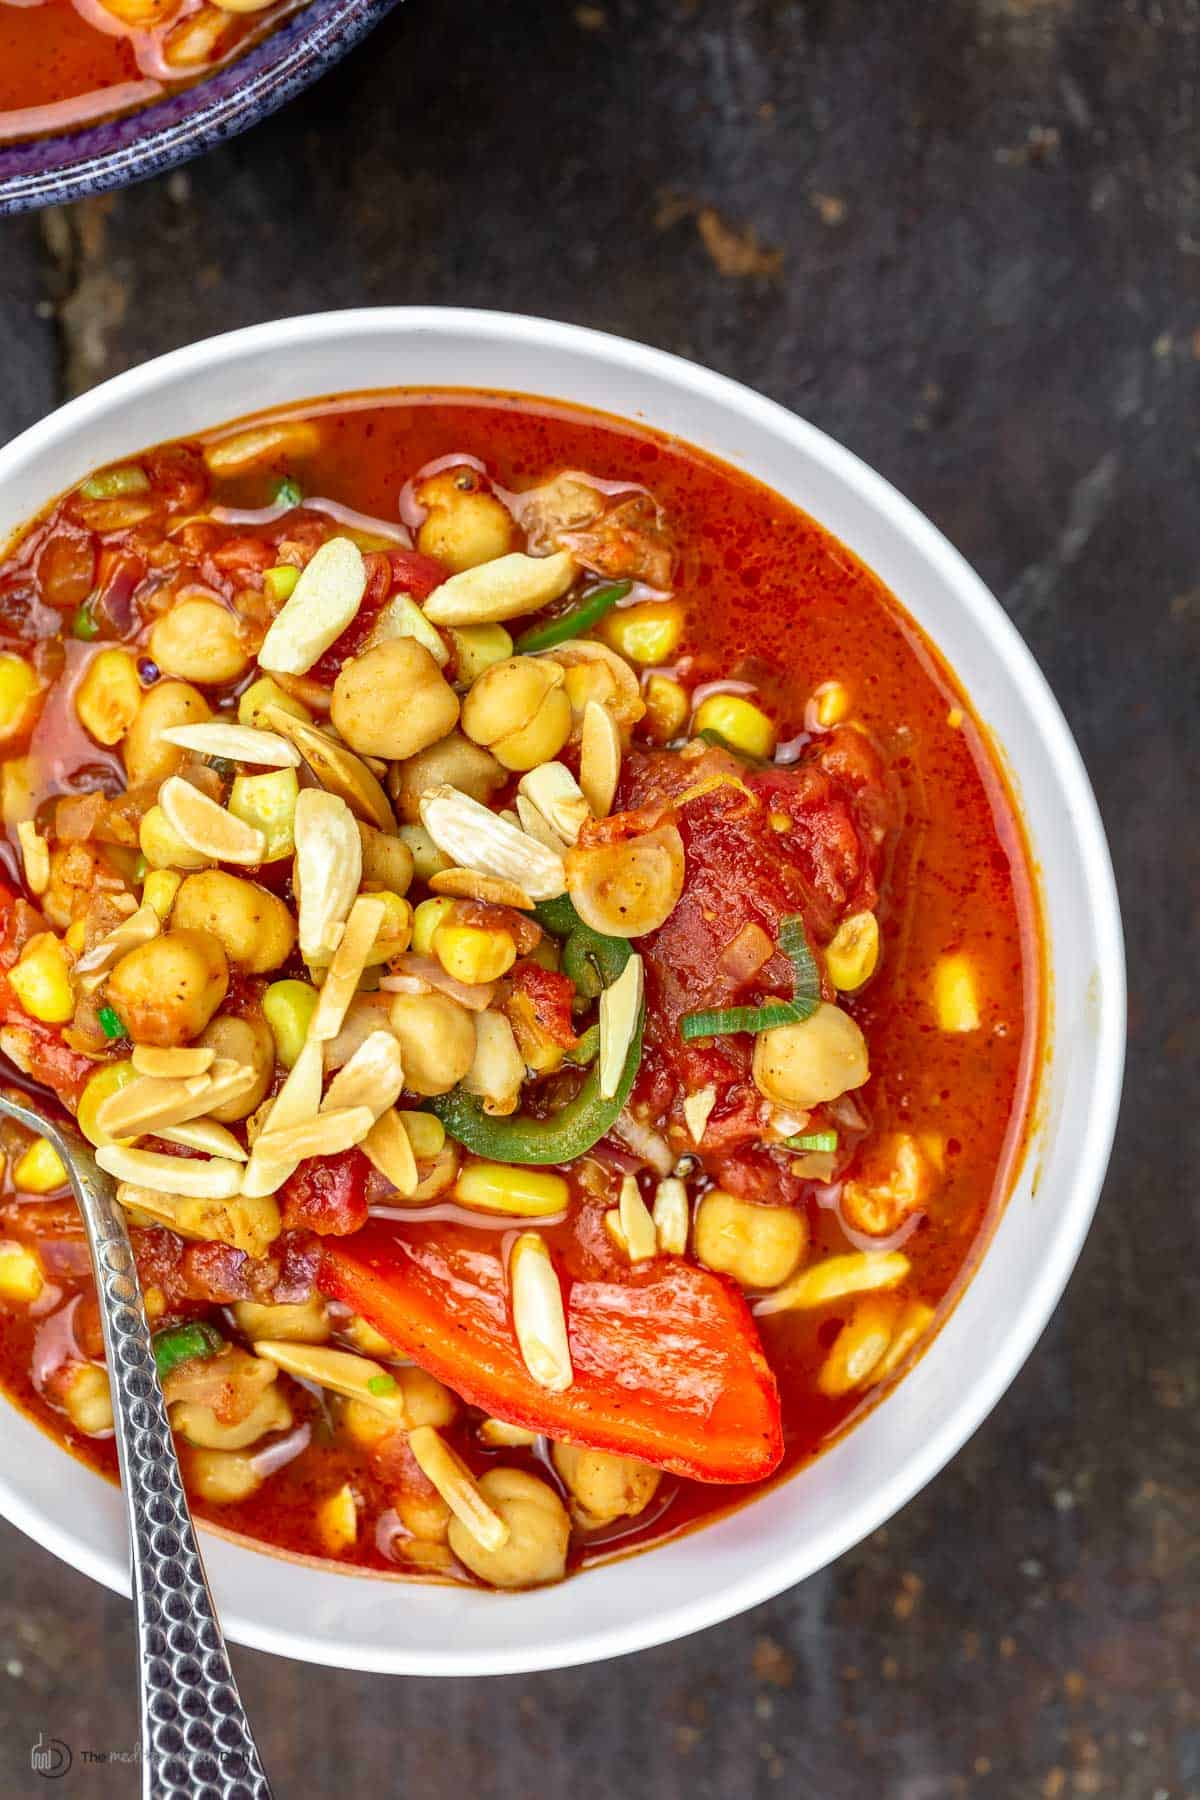 A big bowl of chickpea chili topped with toasted almonds